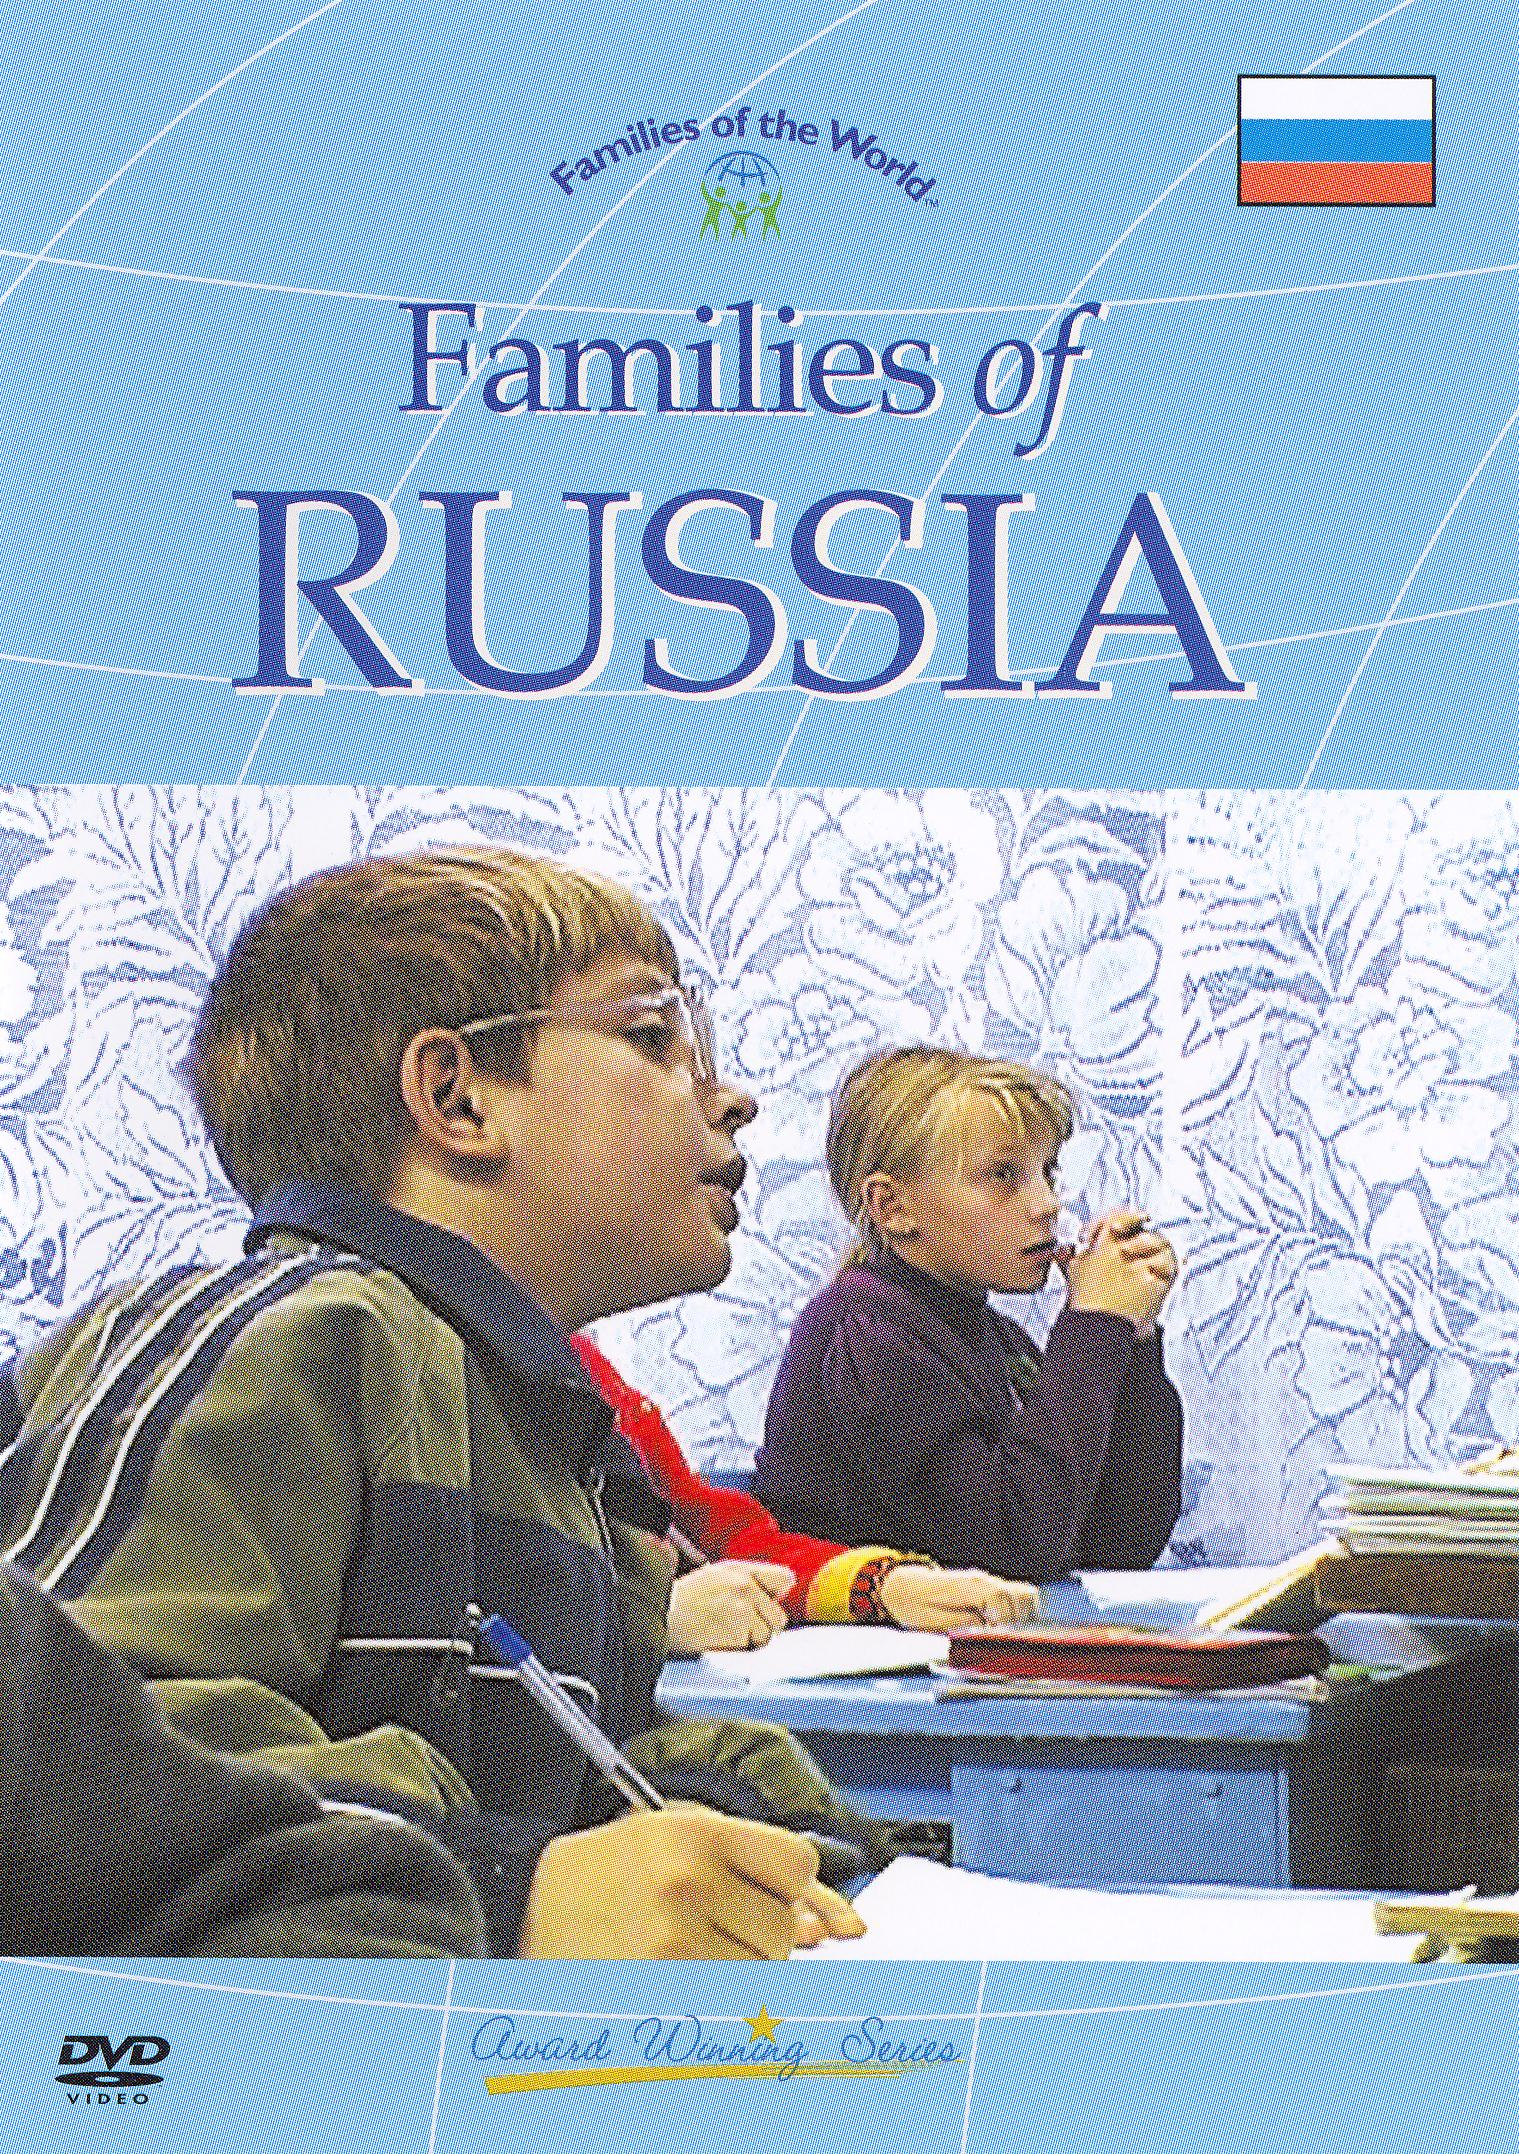 Families of the World: Families of Russia